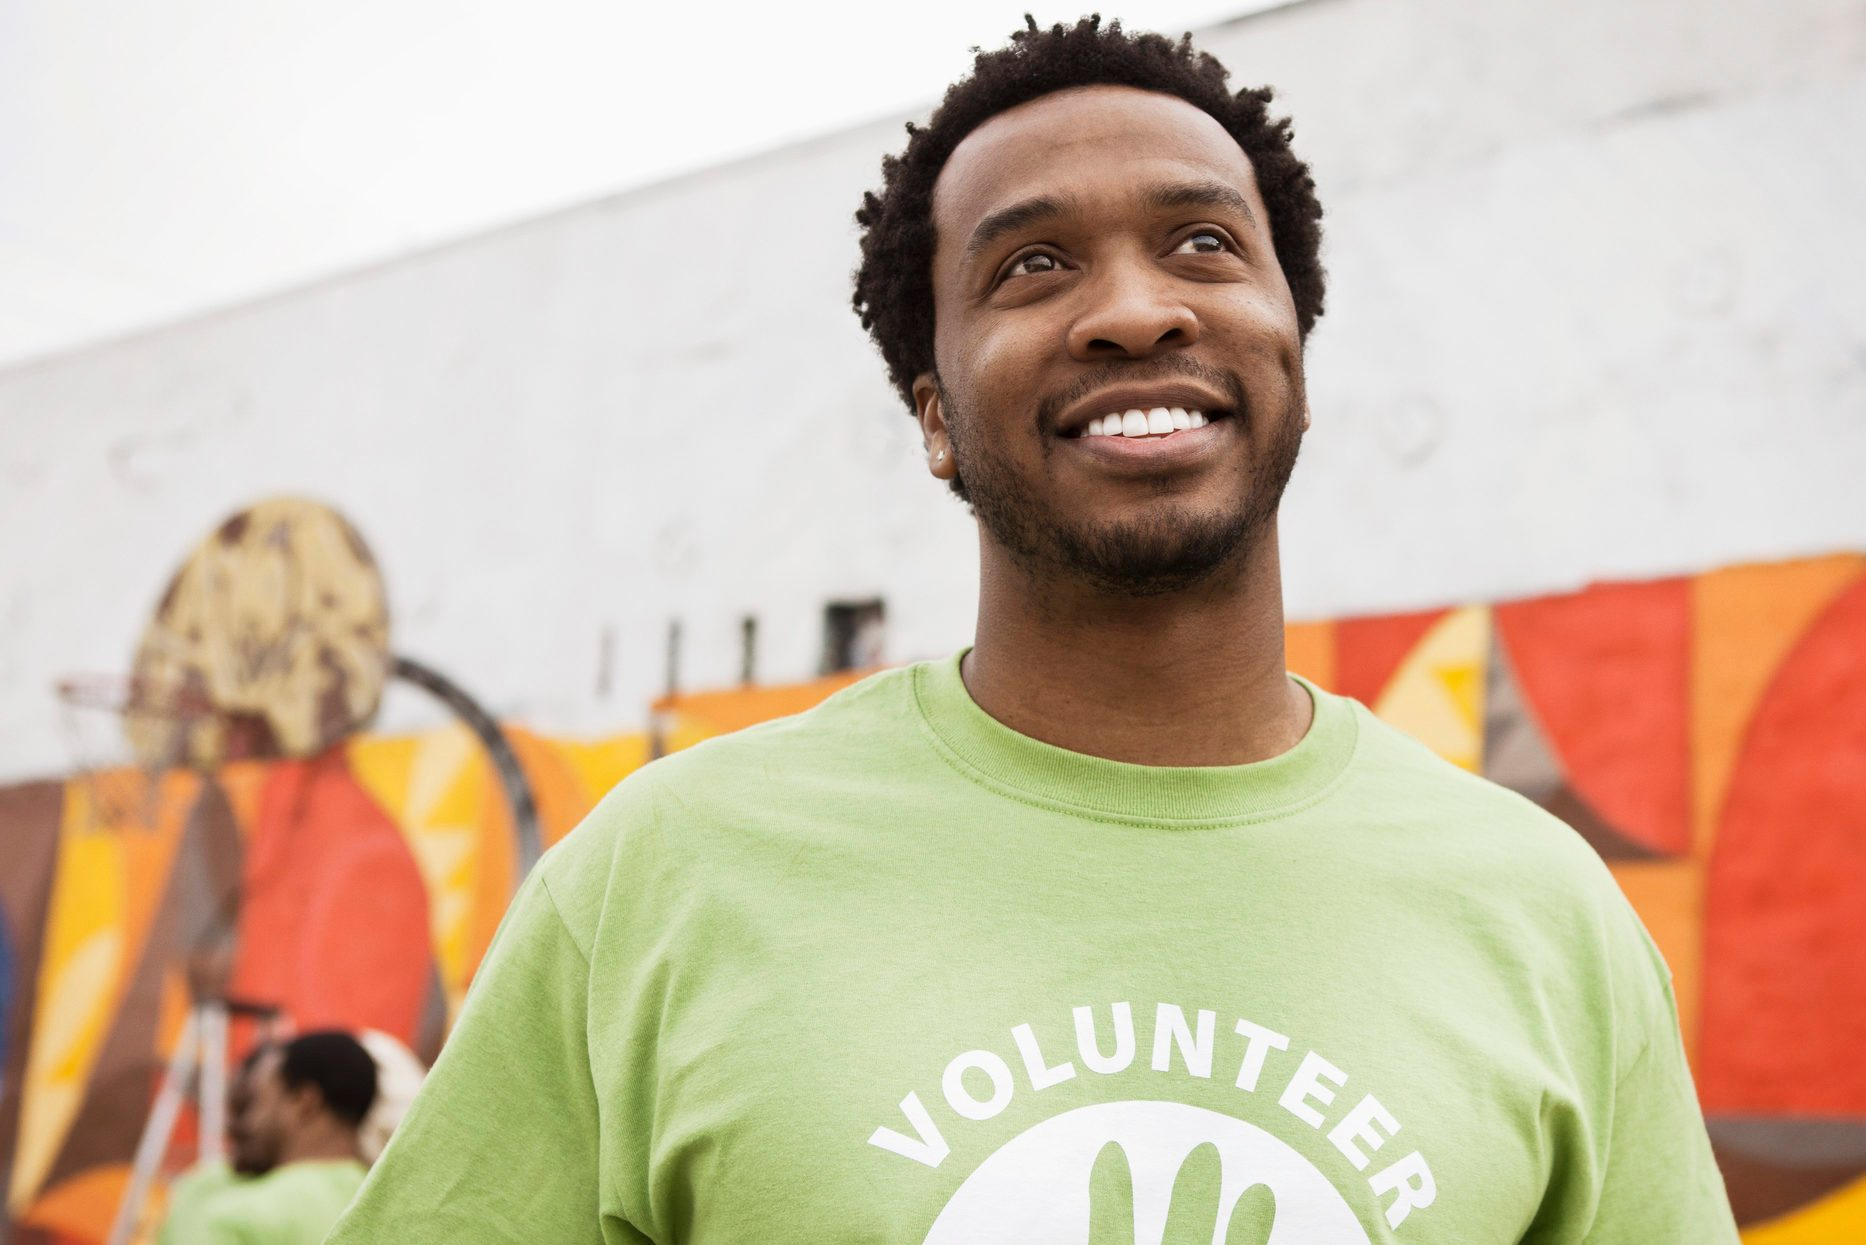 close up of smiling man wearing volunteer shirt